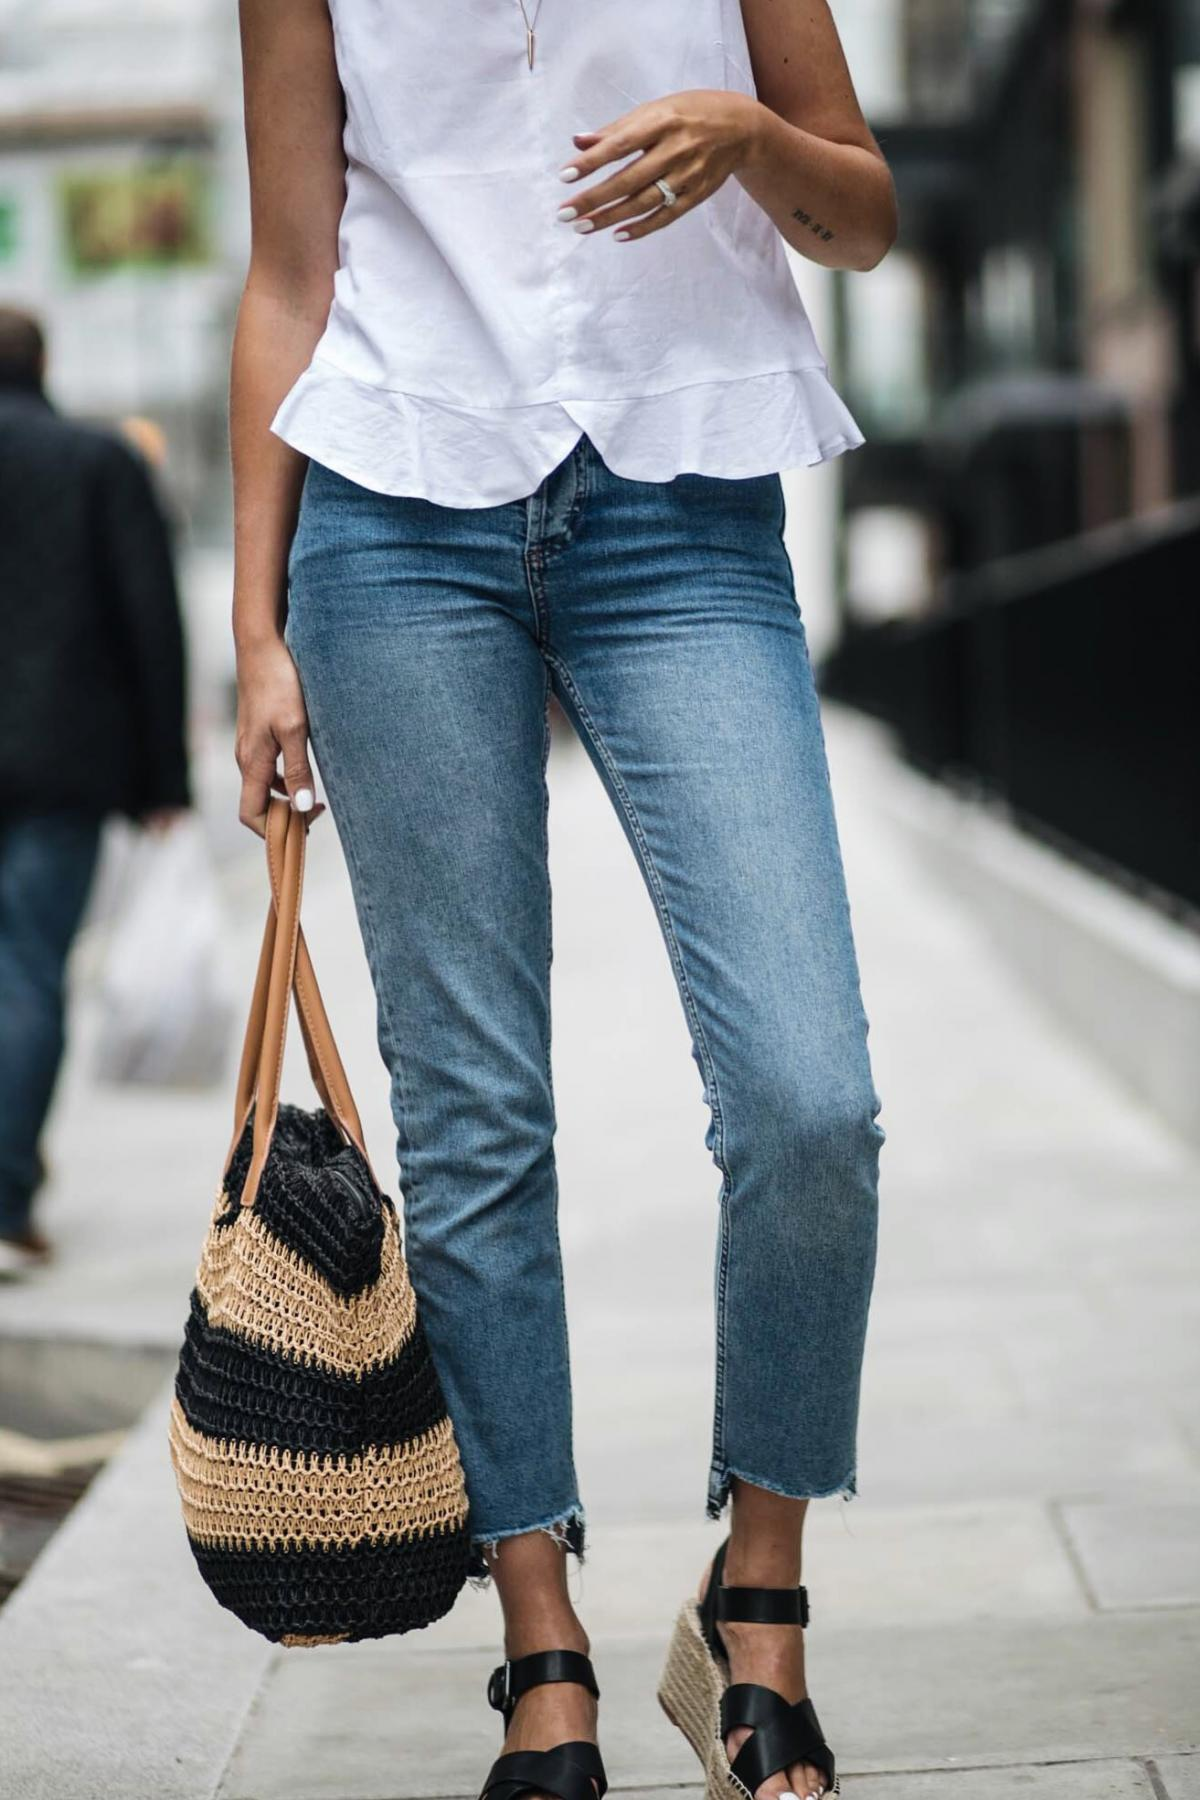 straw shopper bag, straight leg jeans, frill hem sleeveless white top, white nails manicure